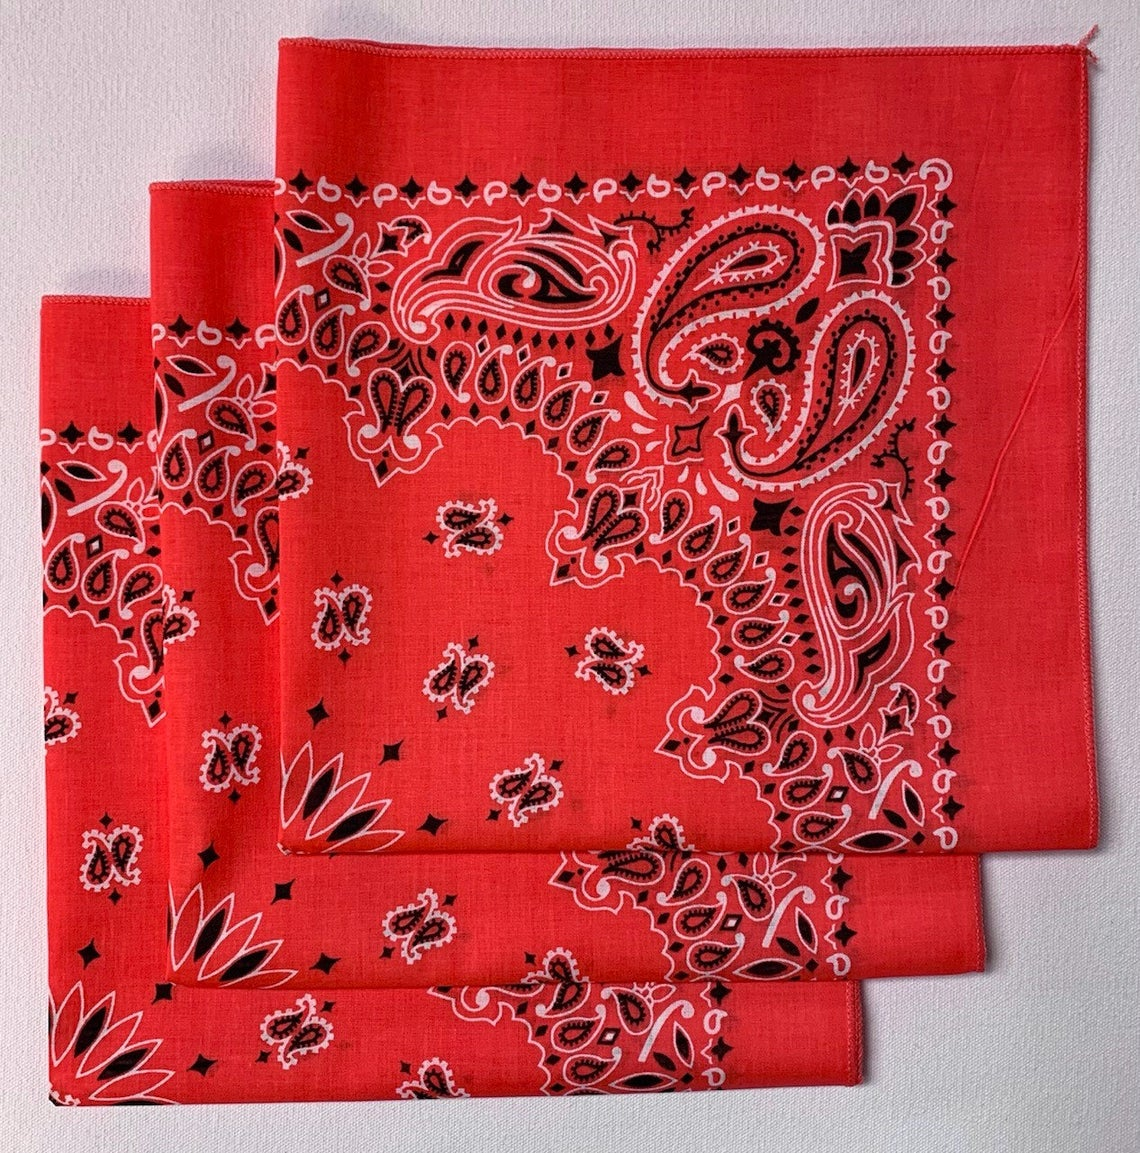 "Honeysuckle Paisley Bandanas - Made In The USA (3 Pk) 22"" x 22"""